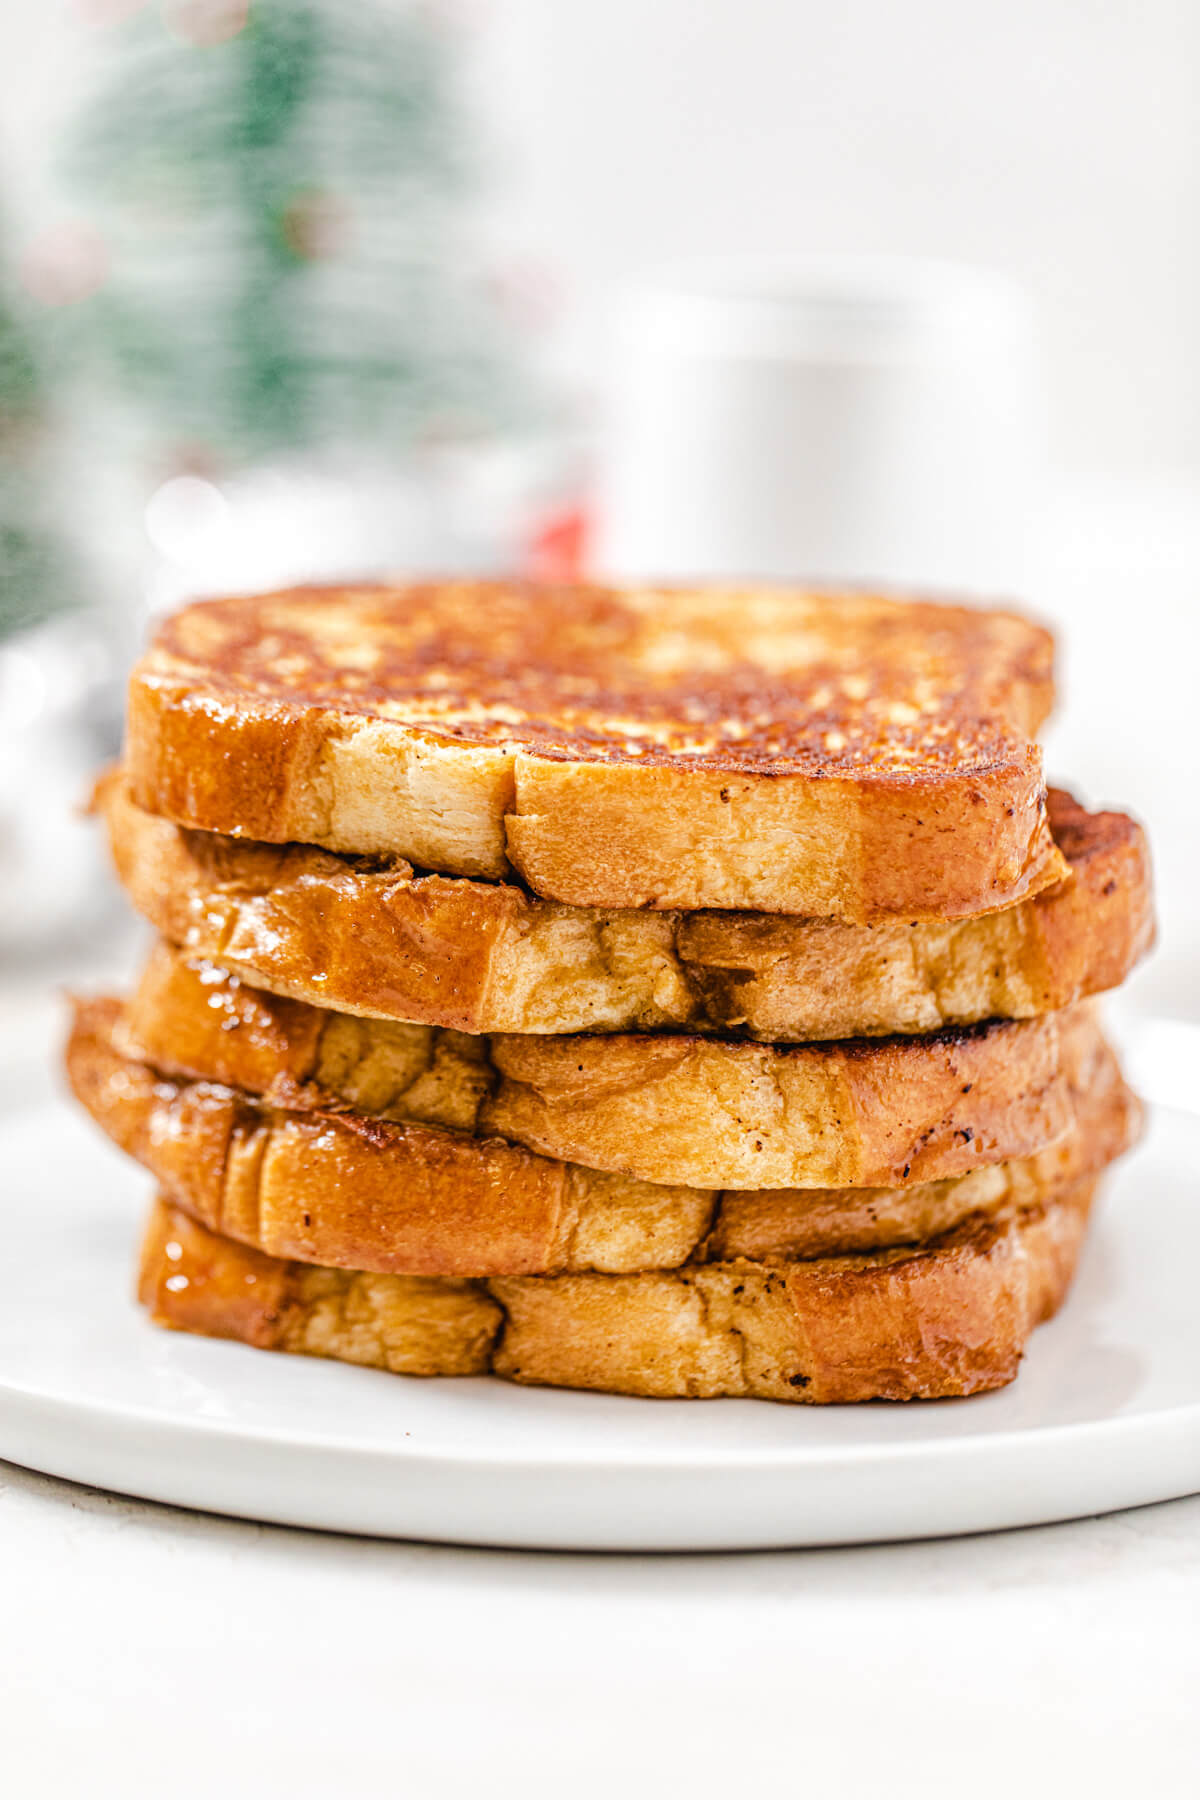 stack of French toast on a white plate